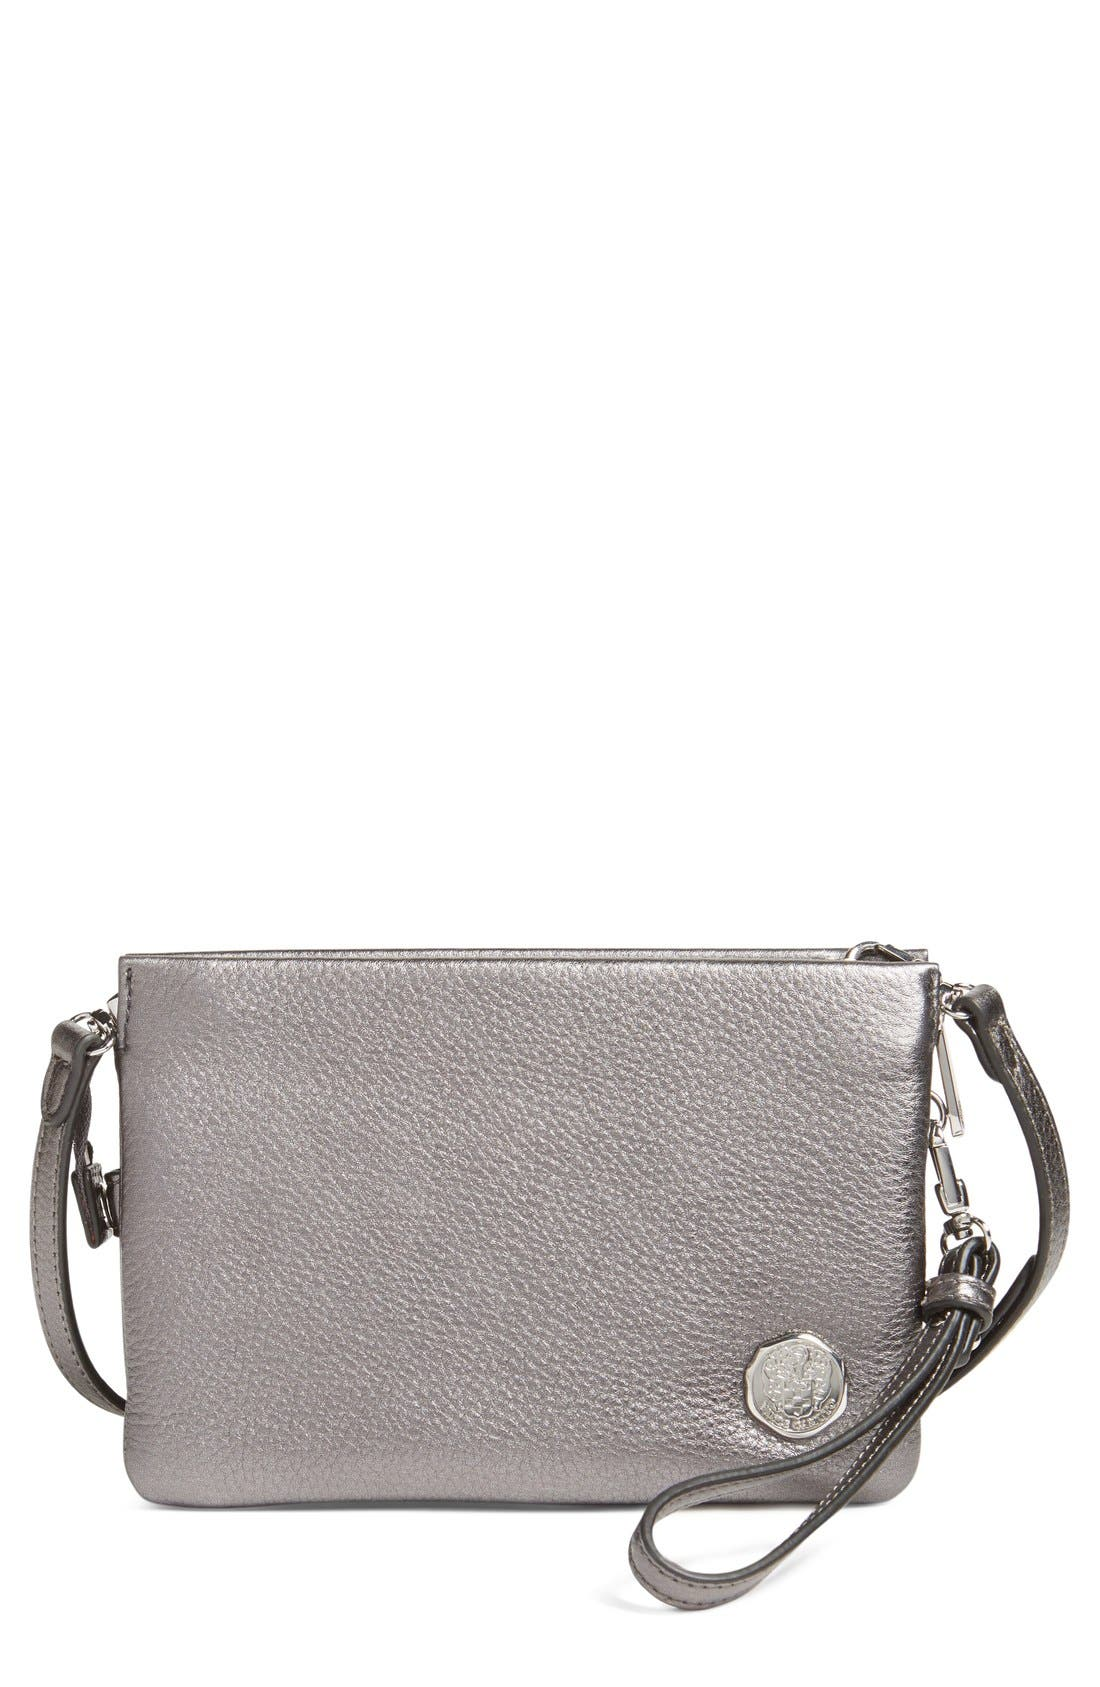 'Cami' Leather Crossbody Bag,                             Main thumbnail 5, color,